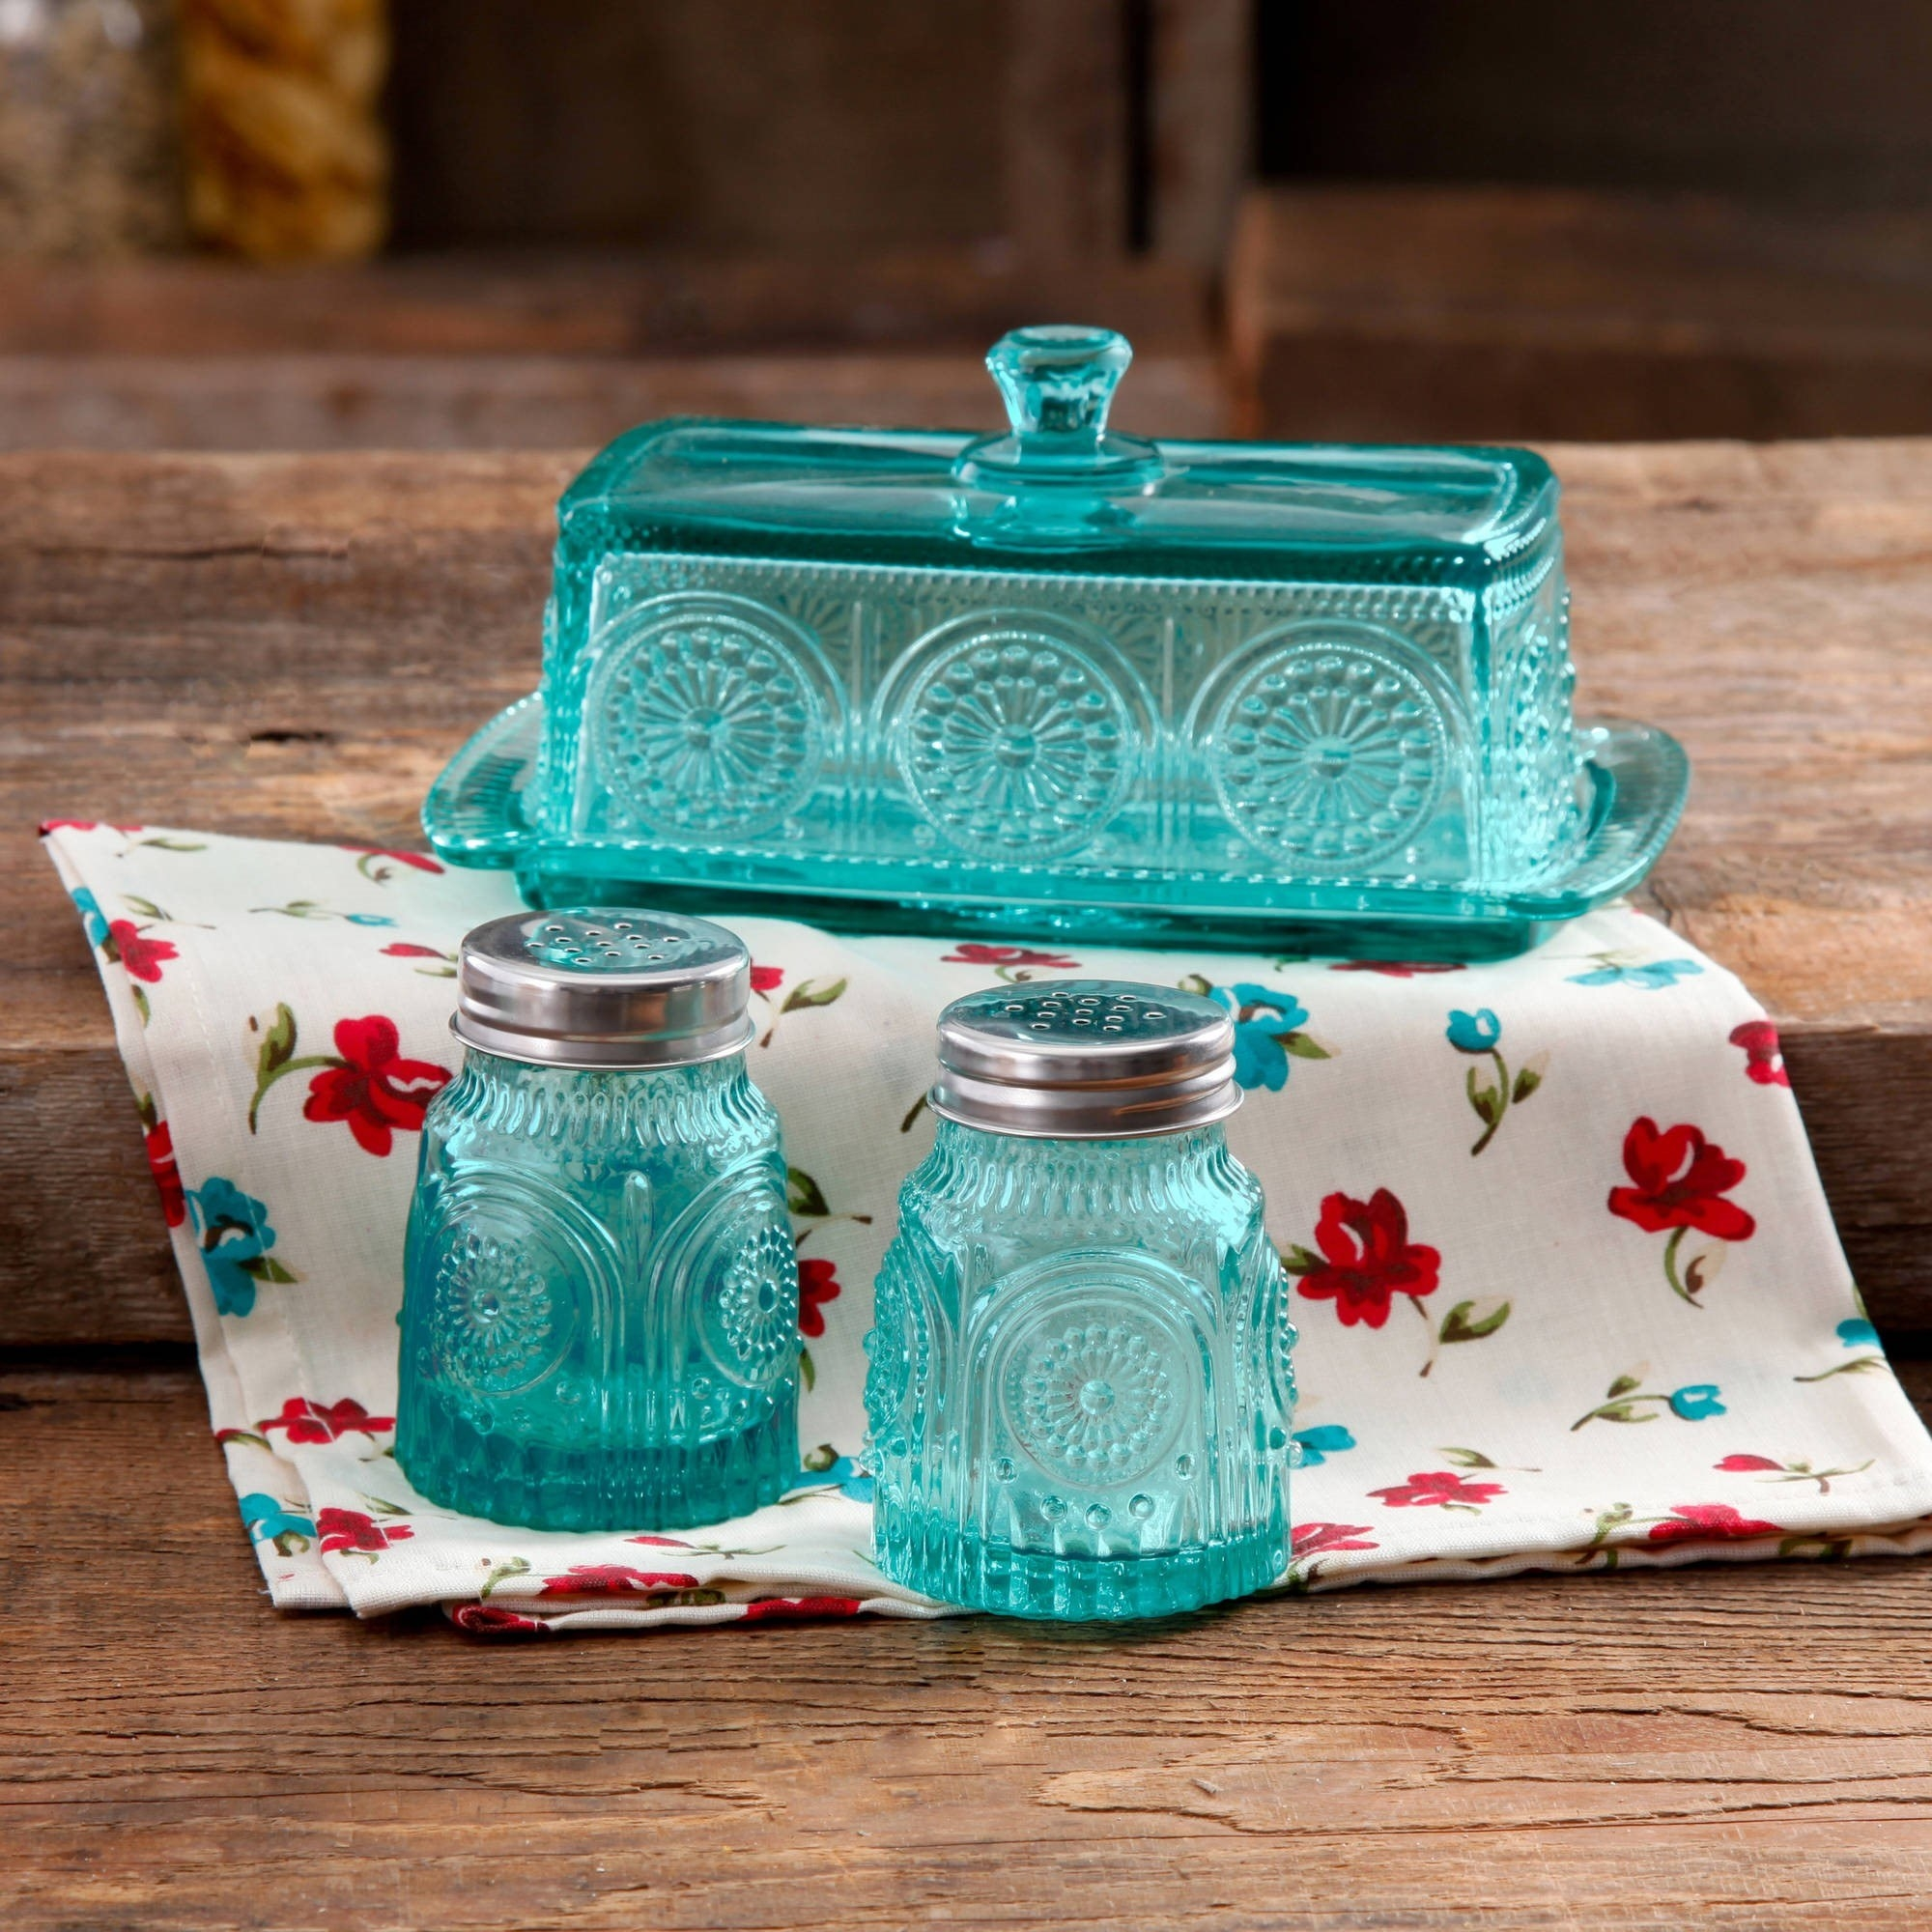 The butter dish and the salt and pepper shaker in the color turquoise